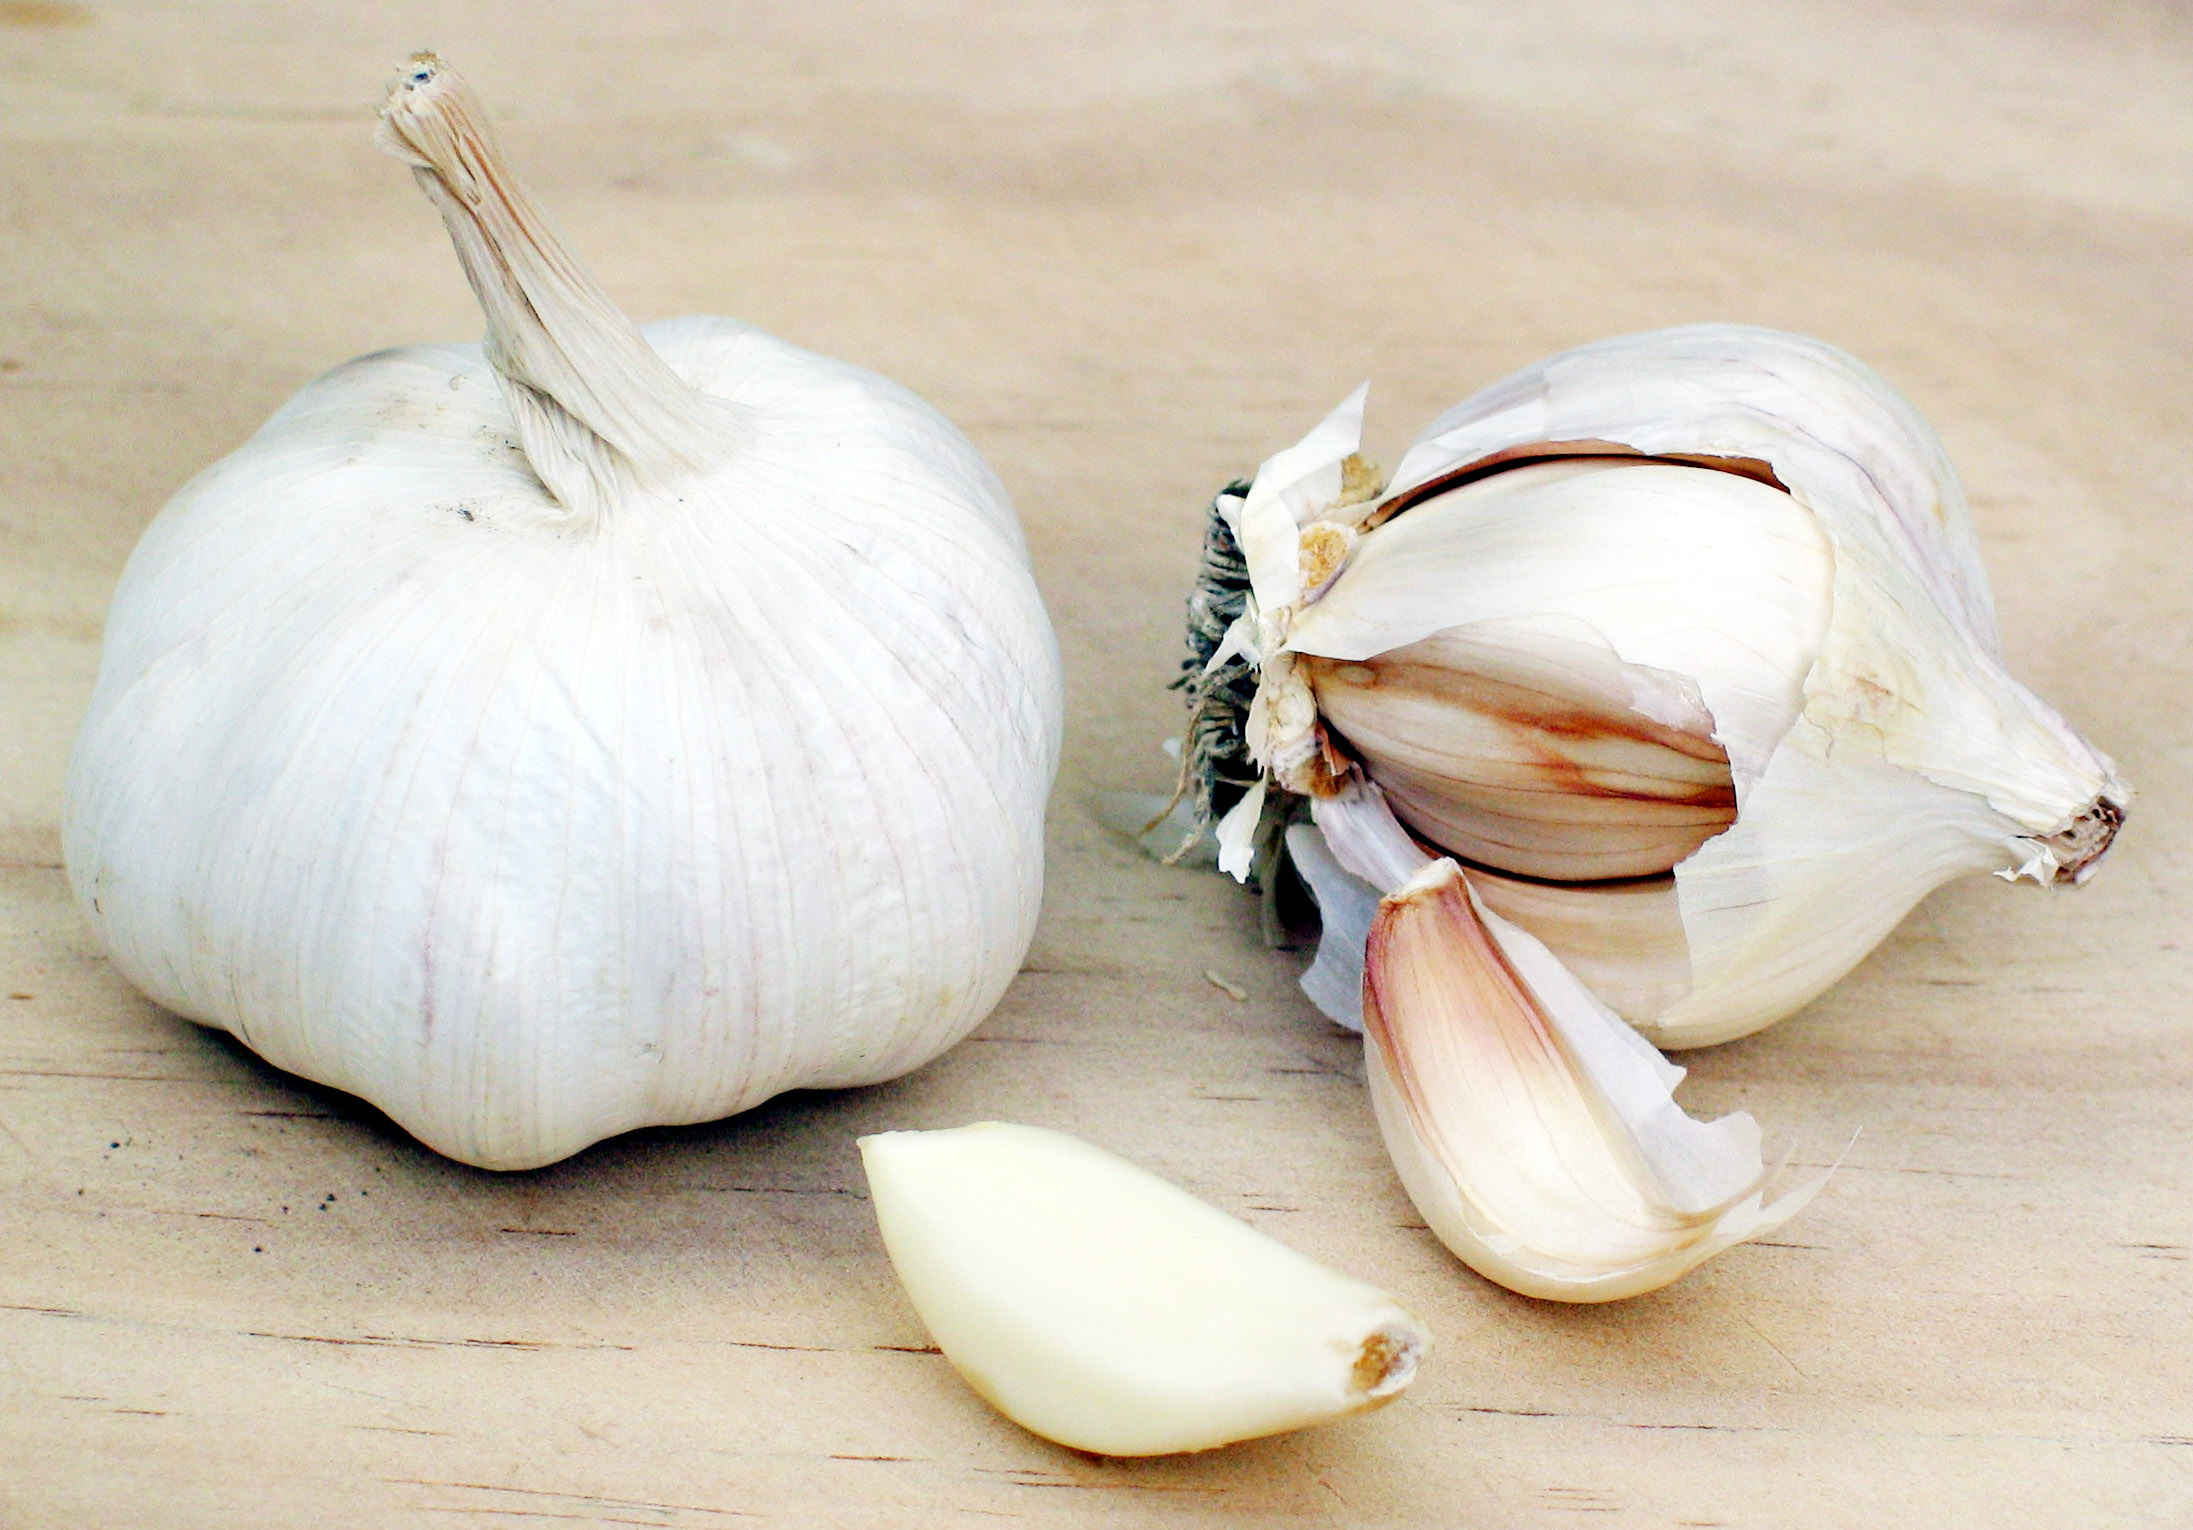 http://upload.wikimedia.org/wikipedia/commons/2/22/Garlic.jpg